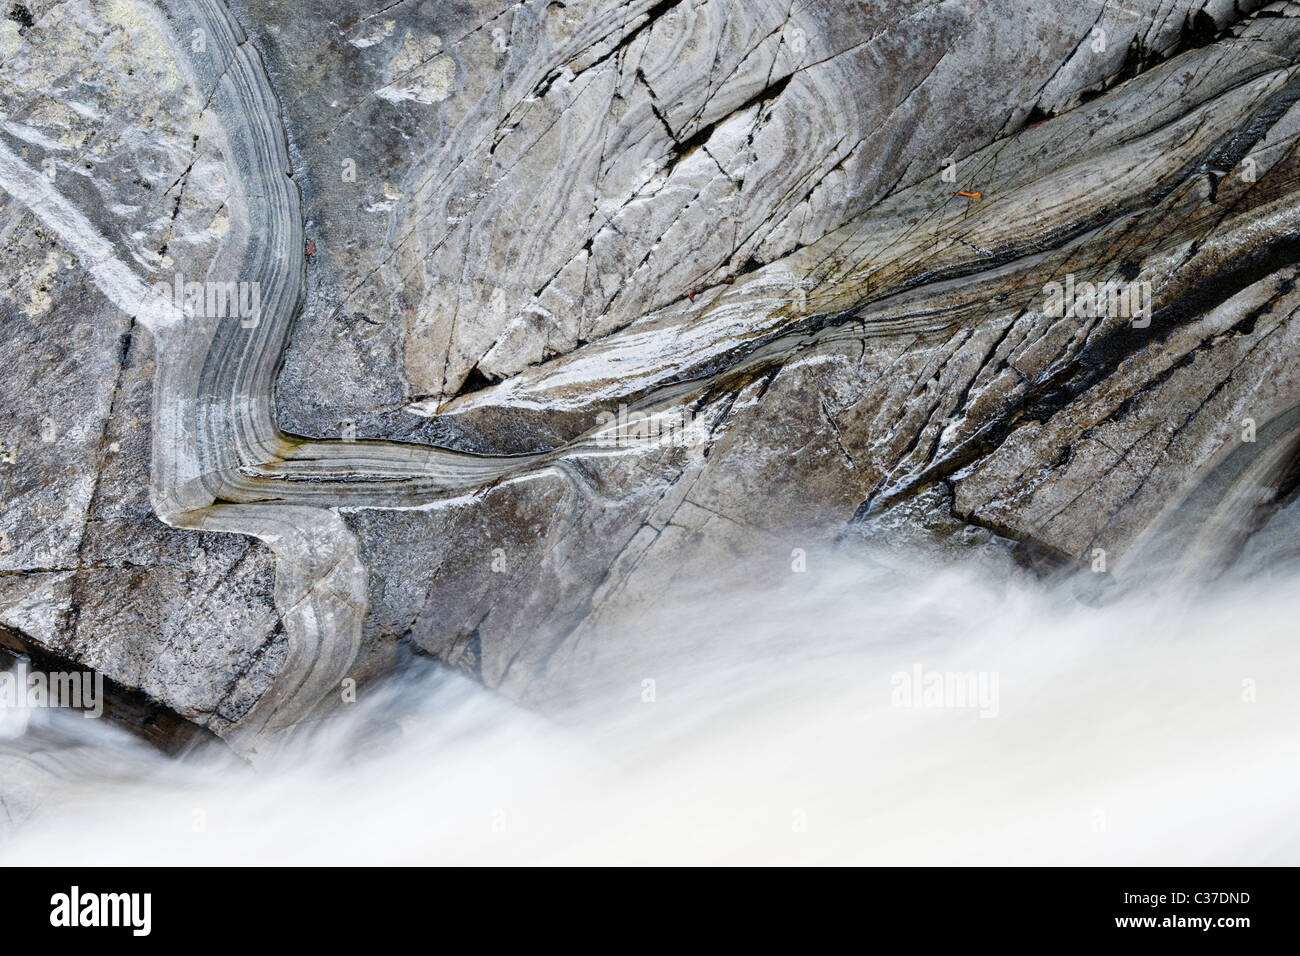 The Water of Bruar and mica schist rock, Perth and Kinross, Scotland, UK. - Stock Image